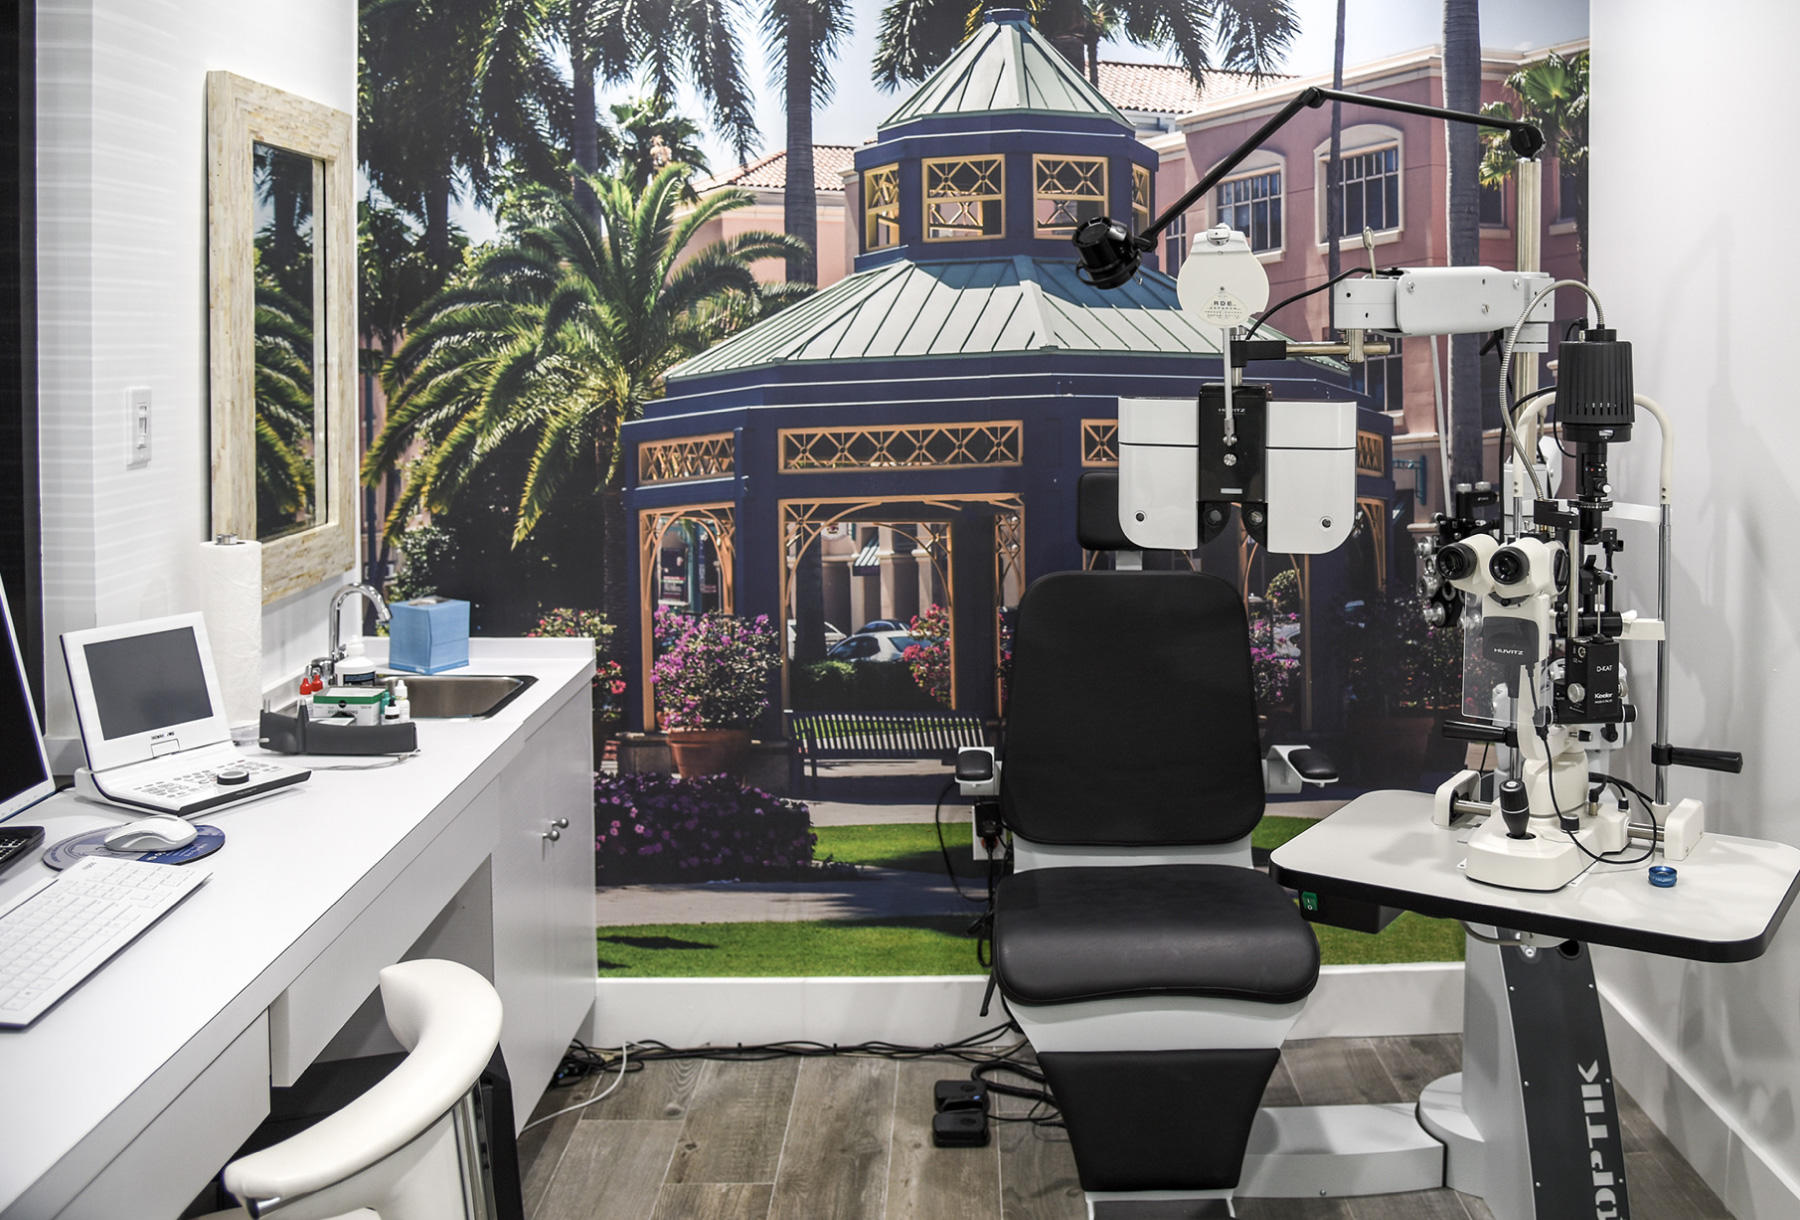 aecd78337f6d Bocaview Optical 21126 St Andrews Blvd By Town Center Mall Boca ...